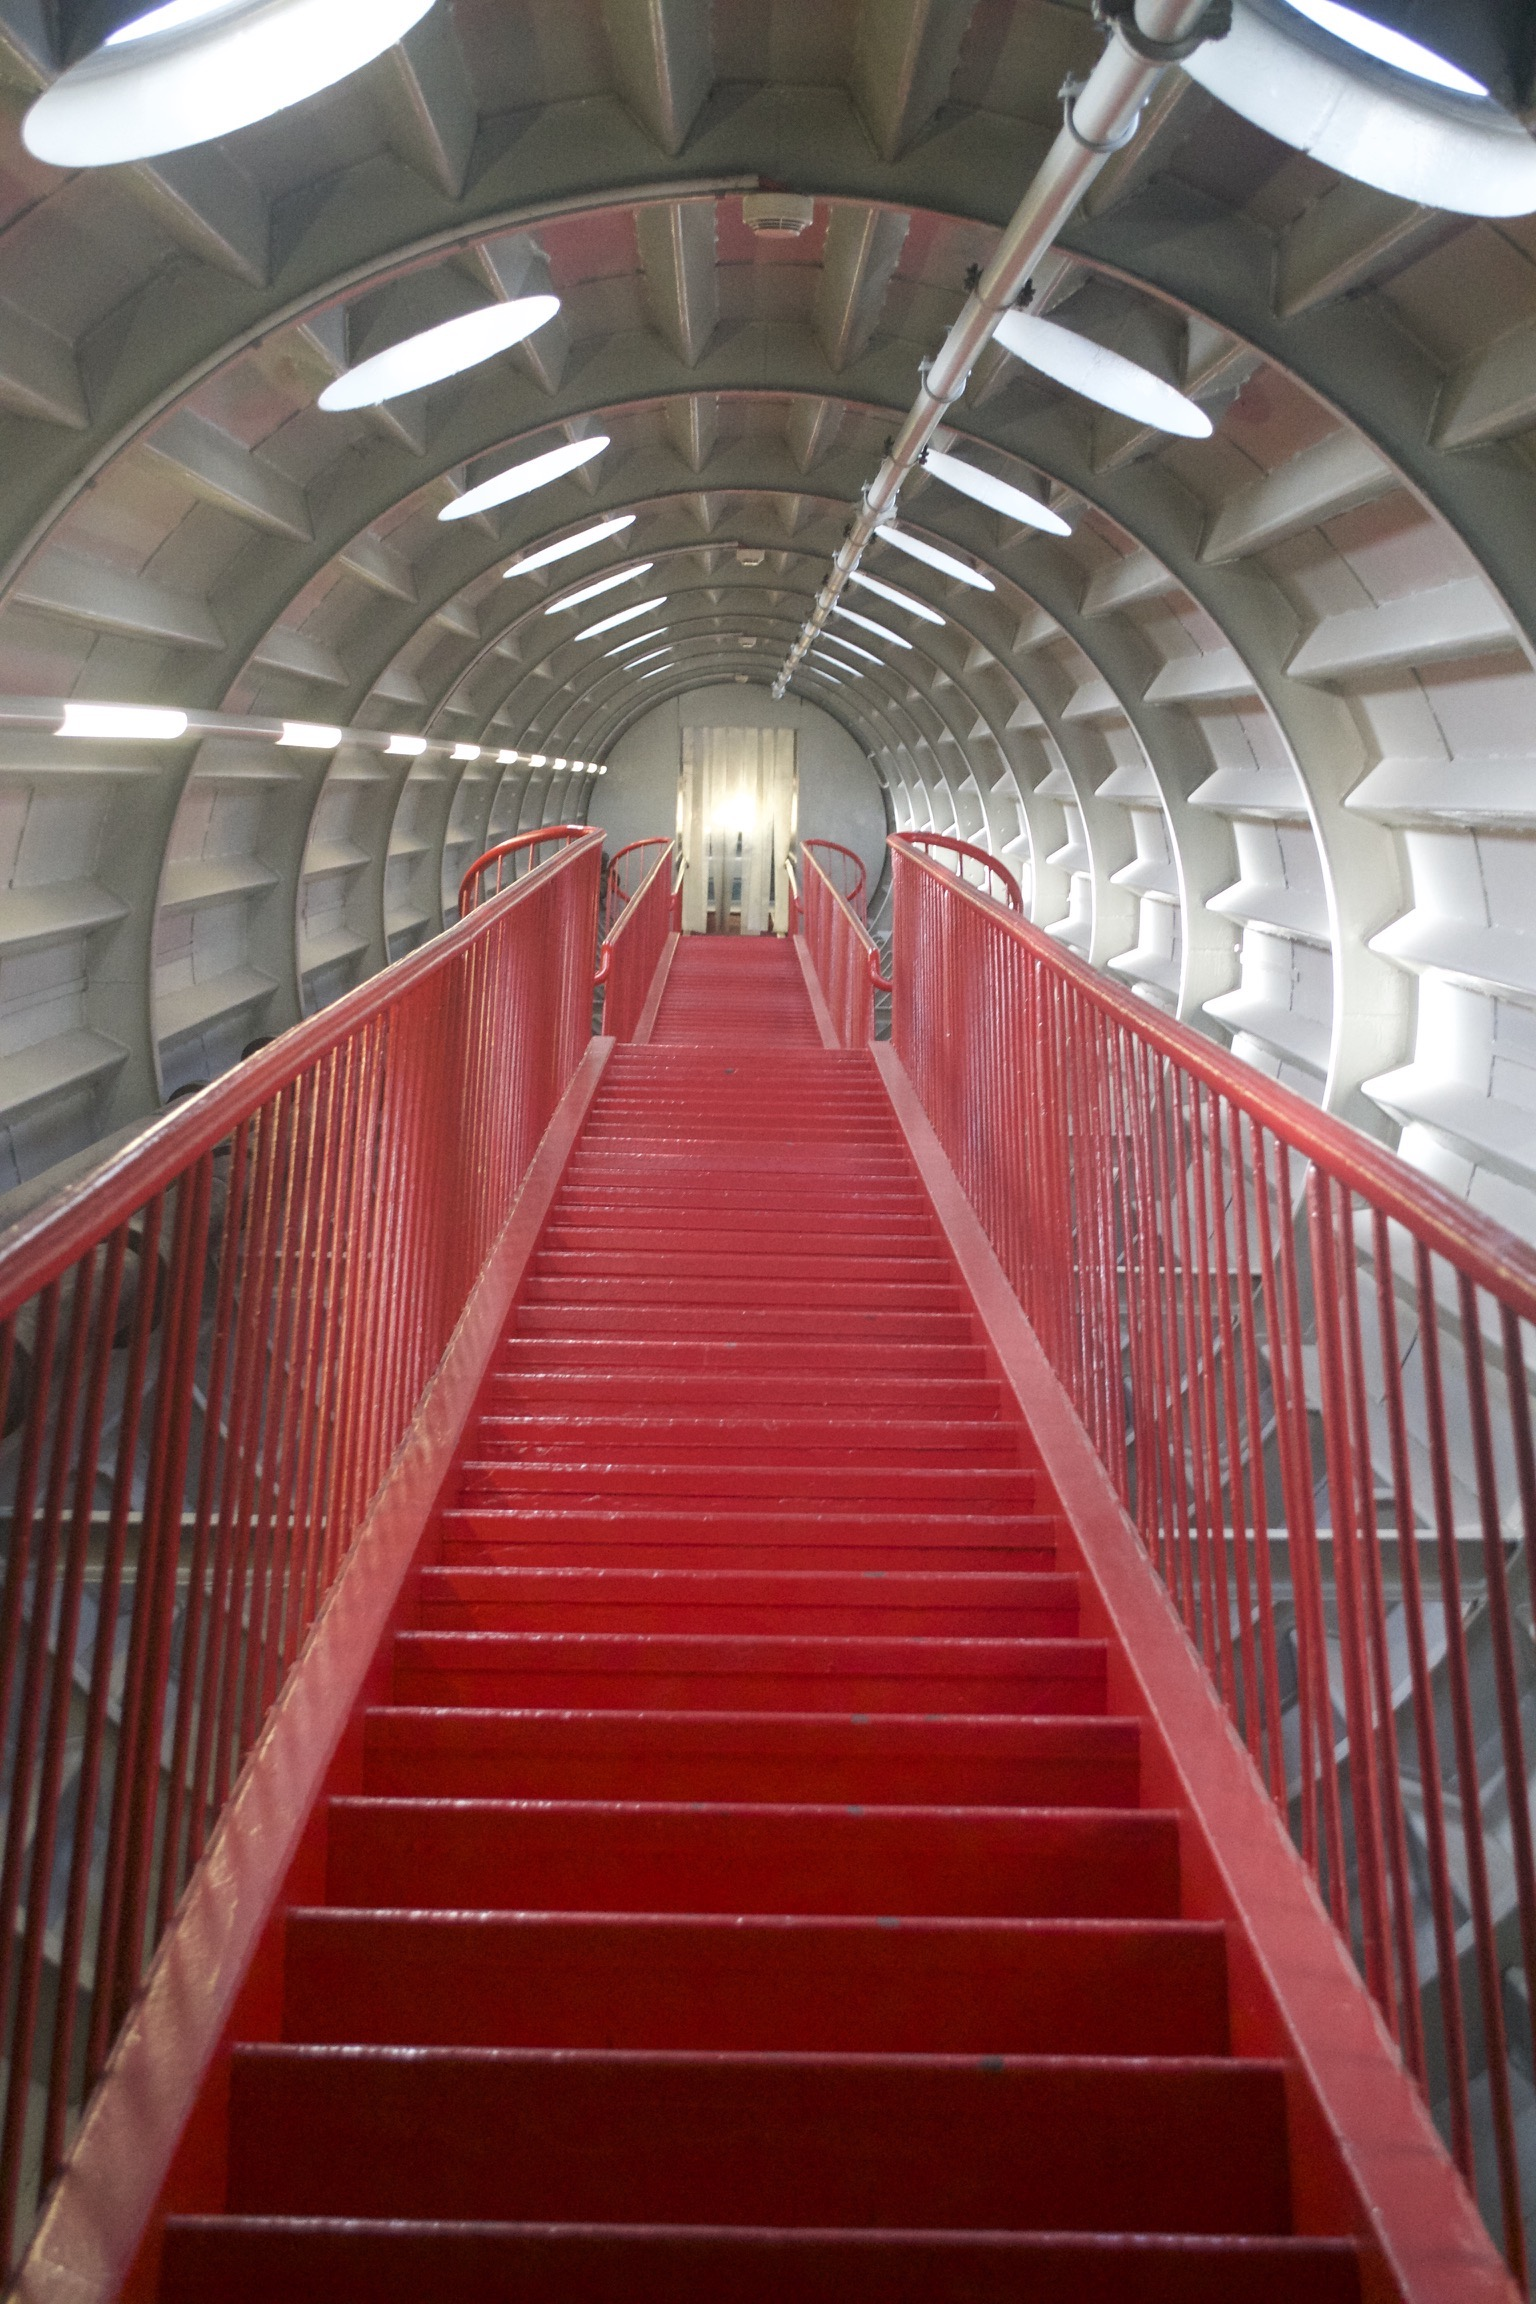 Two flights of red stairs go up a cylindrical tube.